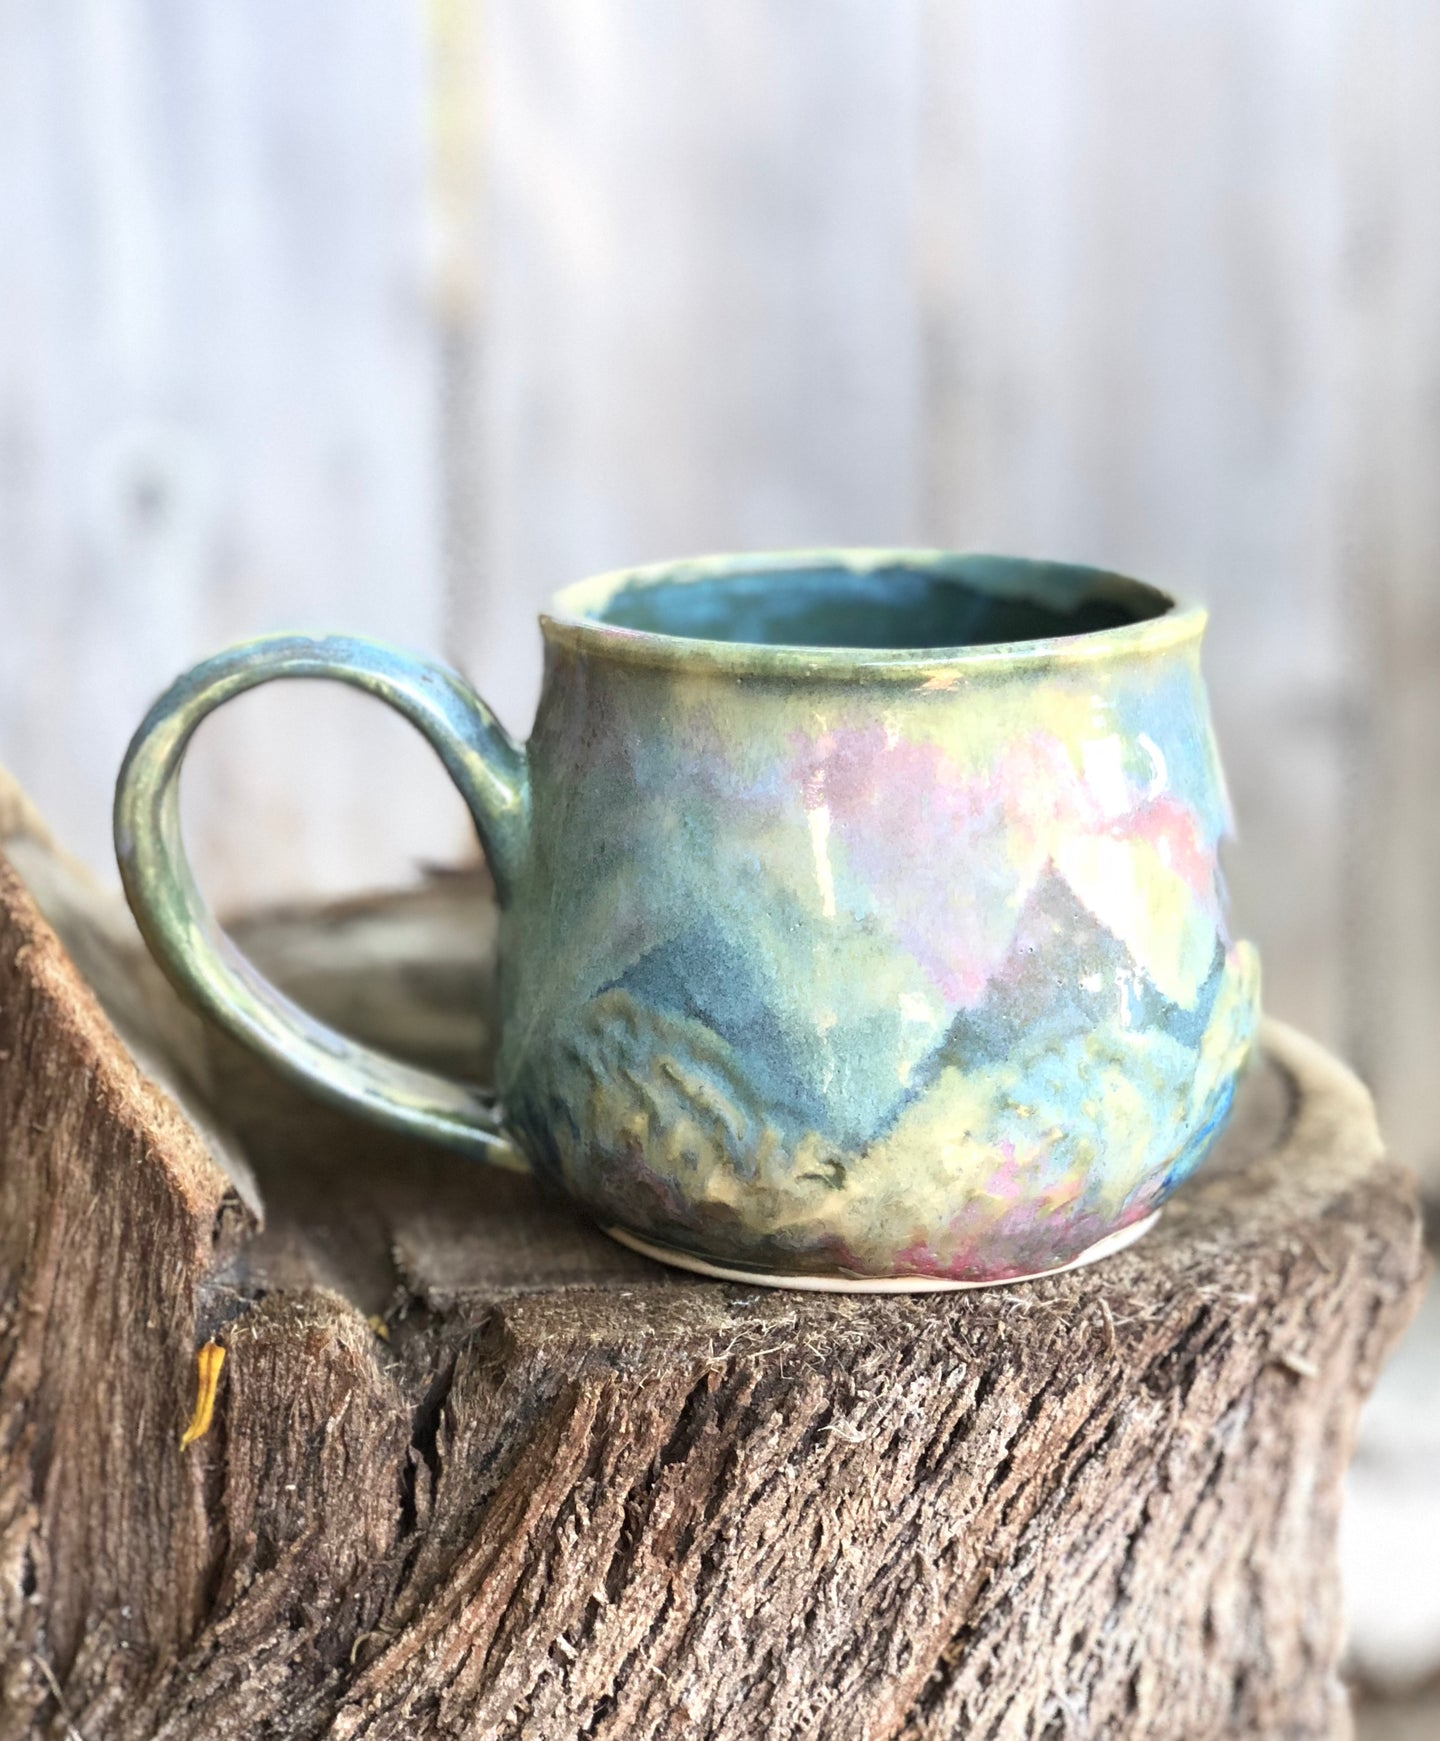 Opal Mug N° 2 - Dreamy Soft Multi Color Ceramic Mug 14 oz - Hsiaowan Studios Handmade Ceramics Pottery